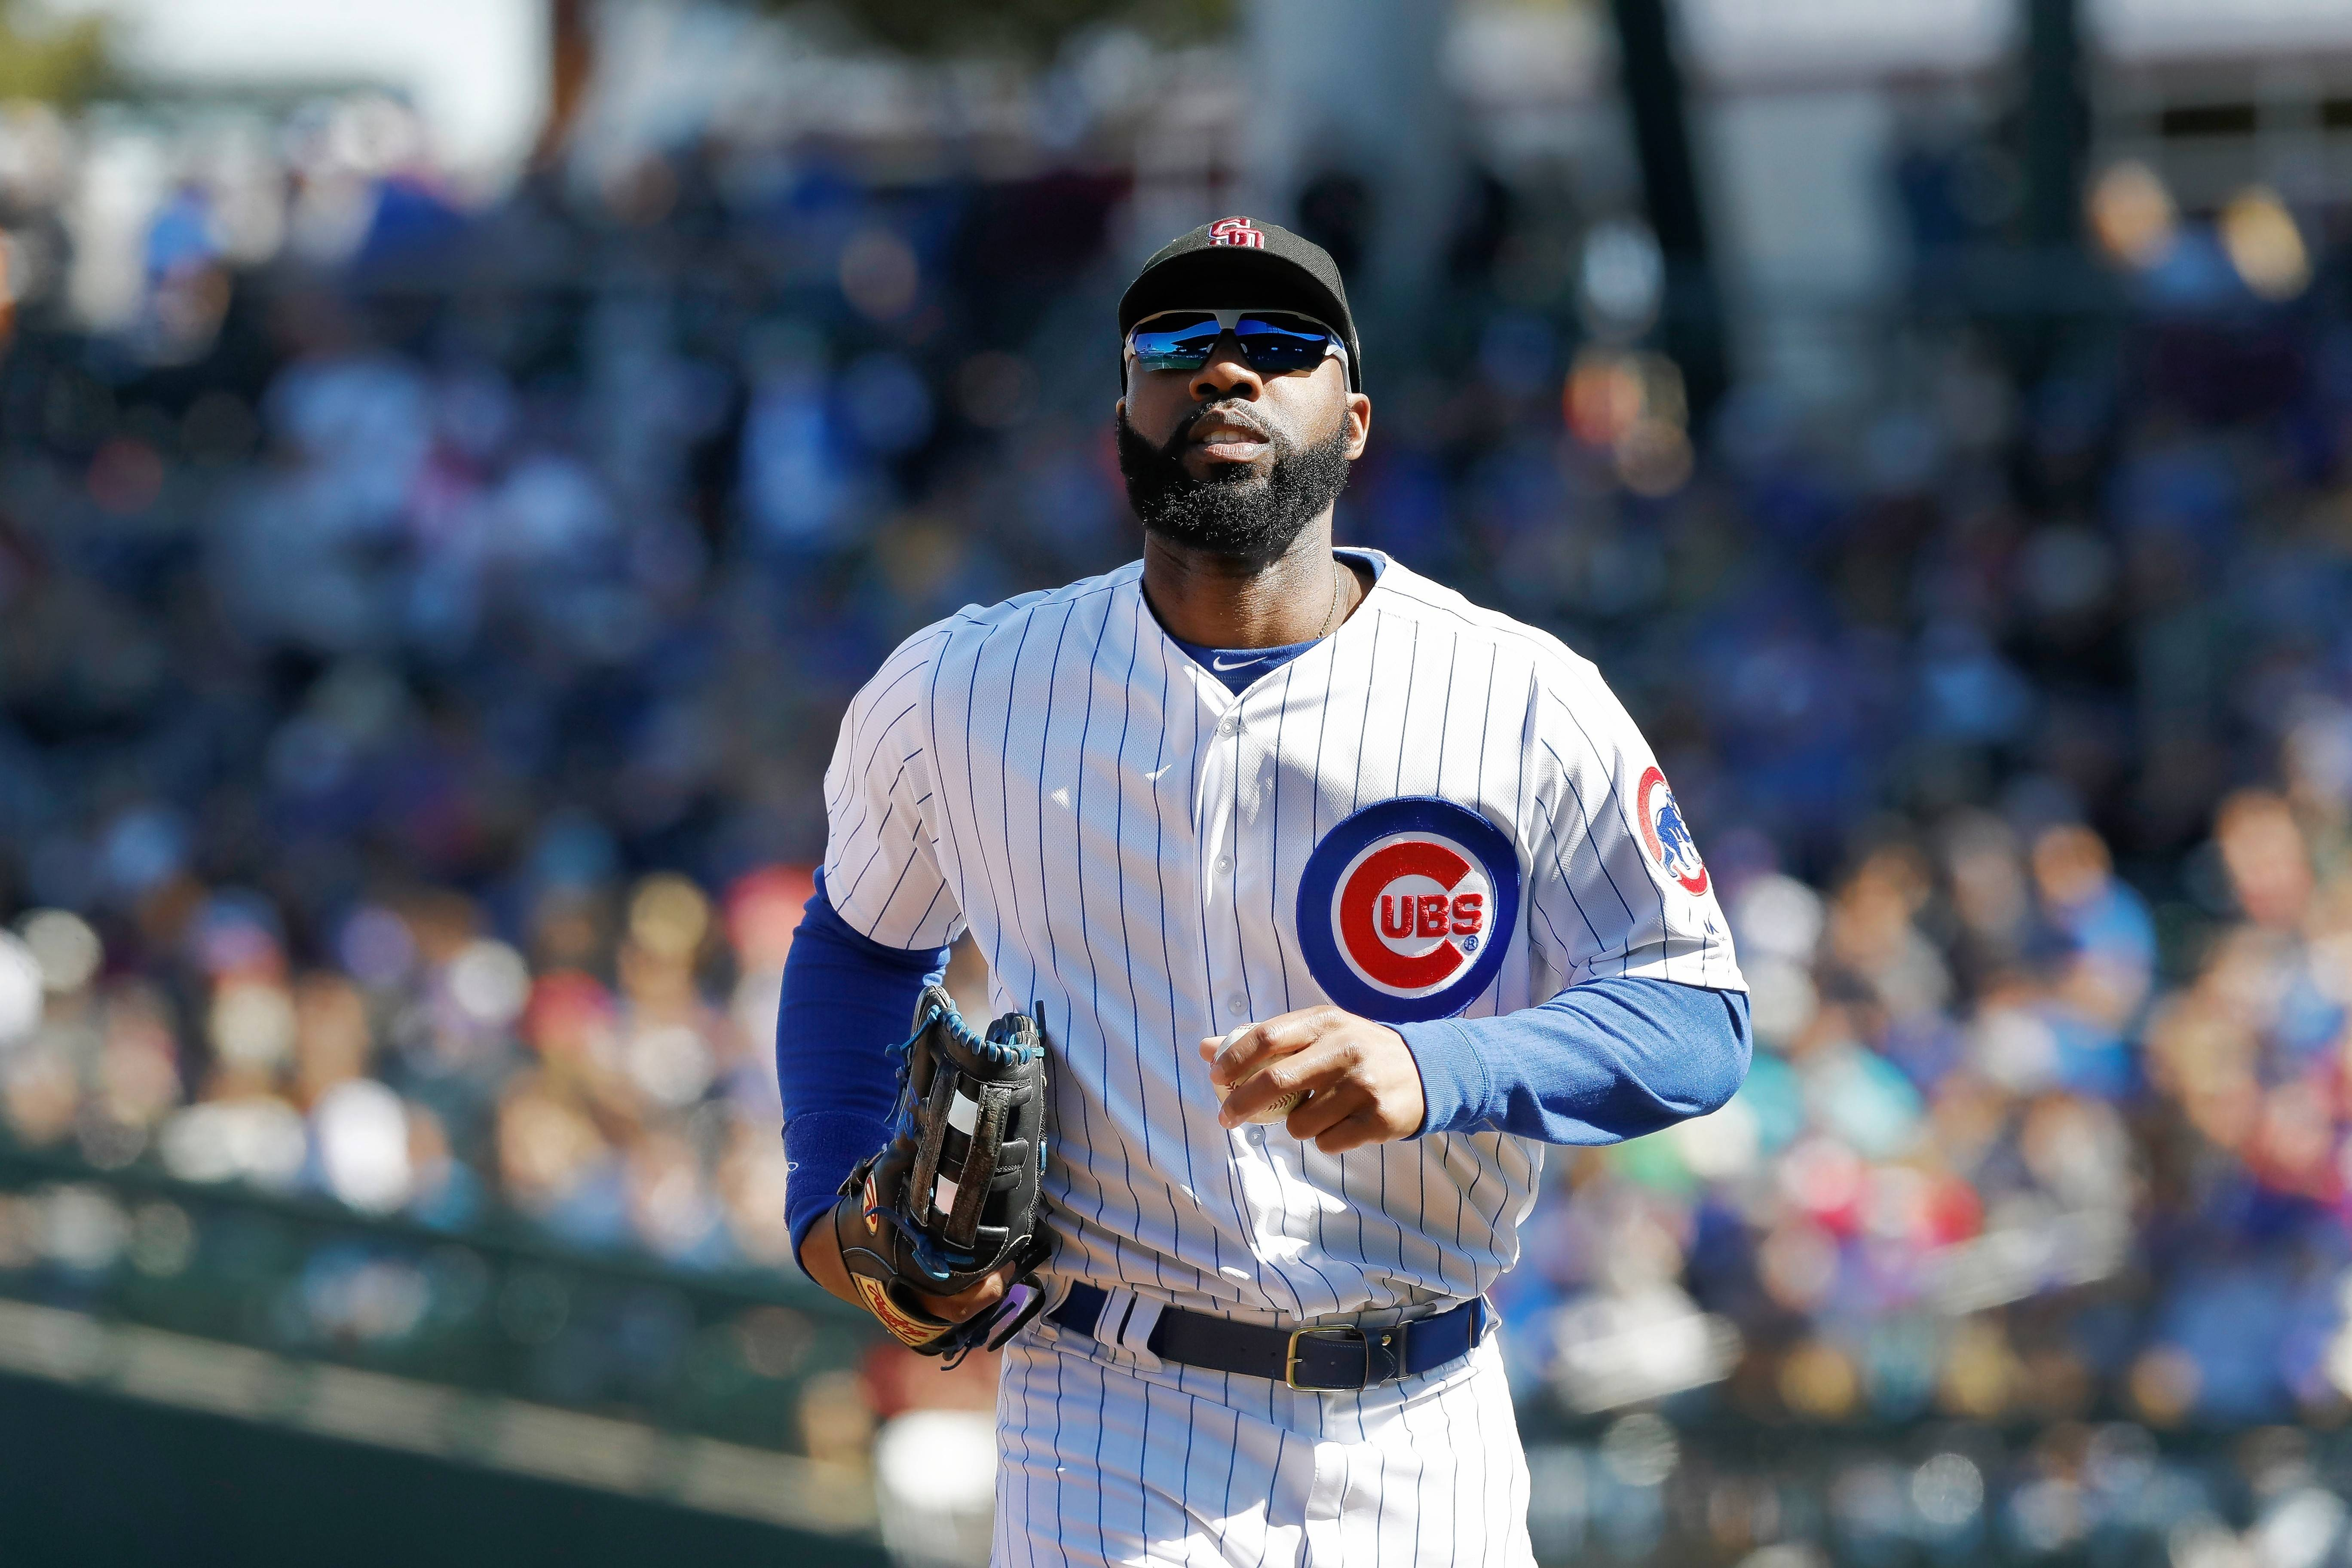 Chicago Cubs right fielder Jason Heyward's batting numbers improved from his first season with the Cubs, but they are far behind his best season in 2012 with Atlanta.